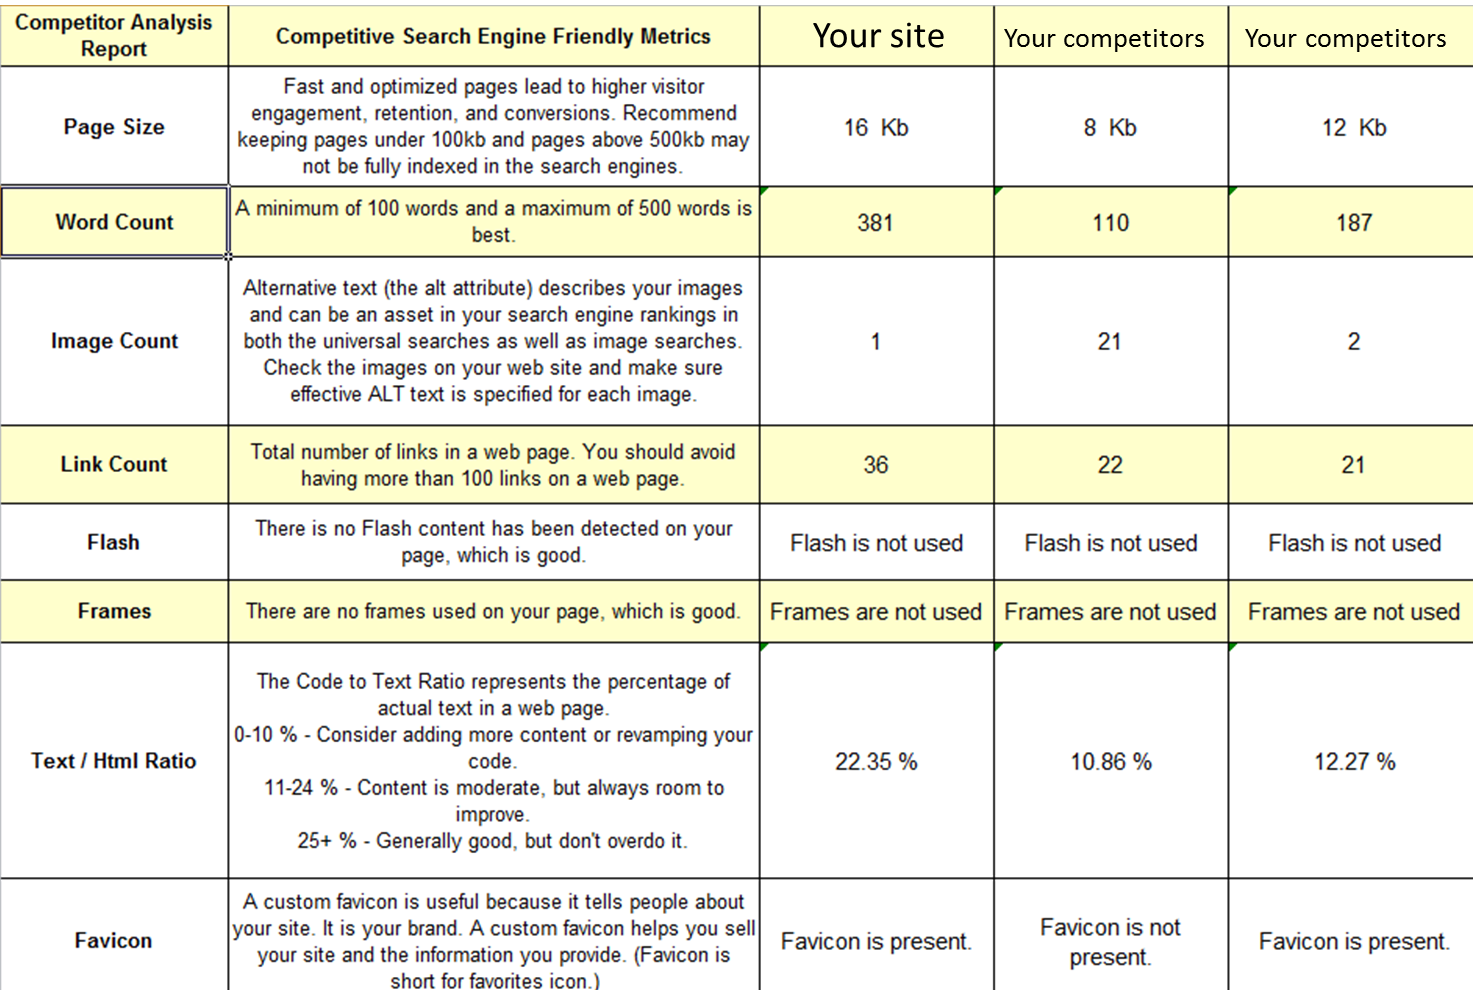 Competitor Analysis Report Page 1